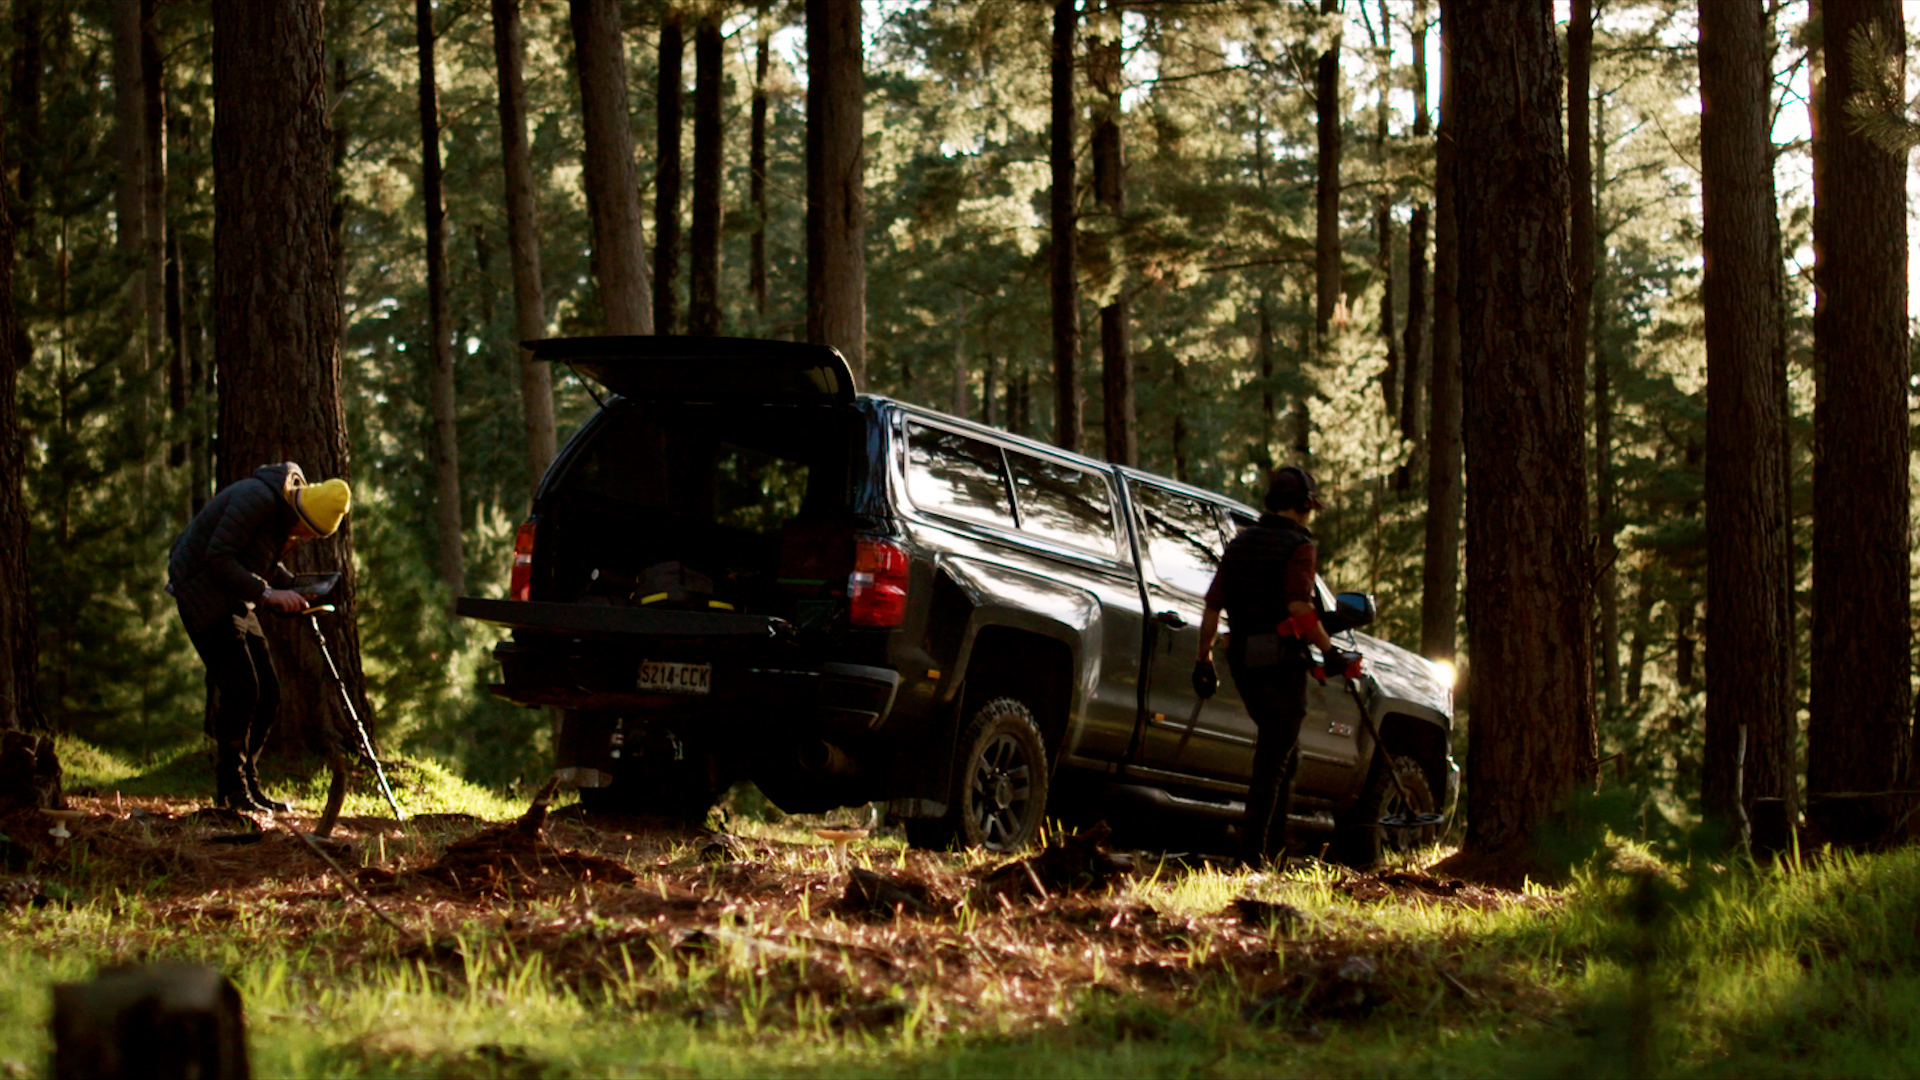 Film Still from the Simply Powerful video. Two men using metal detectors in a forest with an american pick up truck.